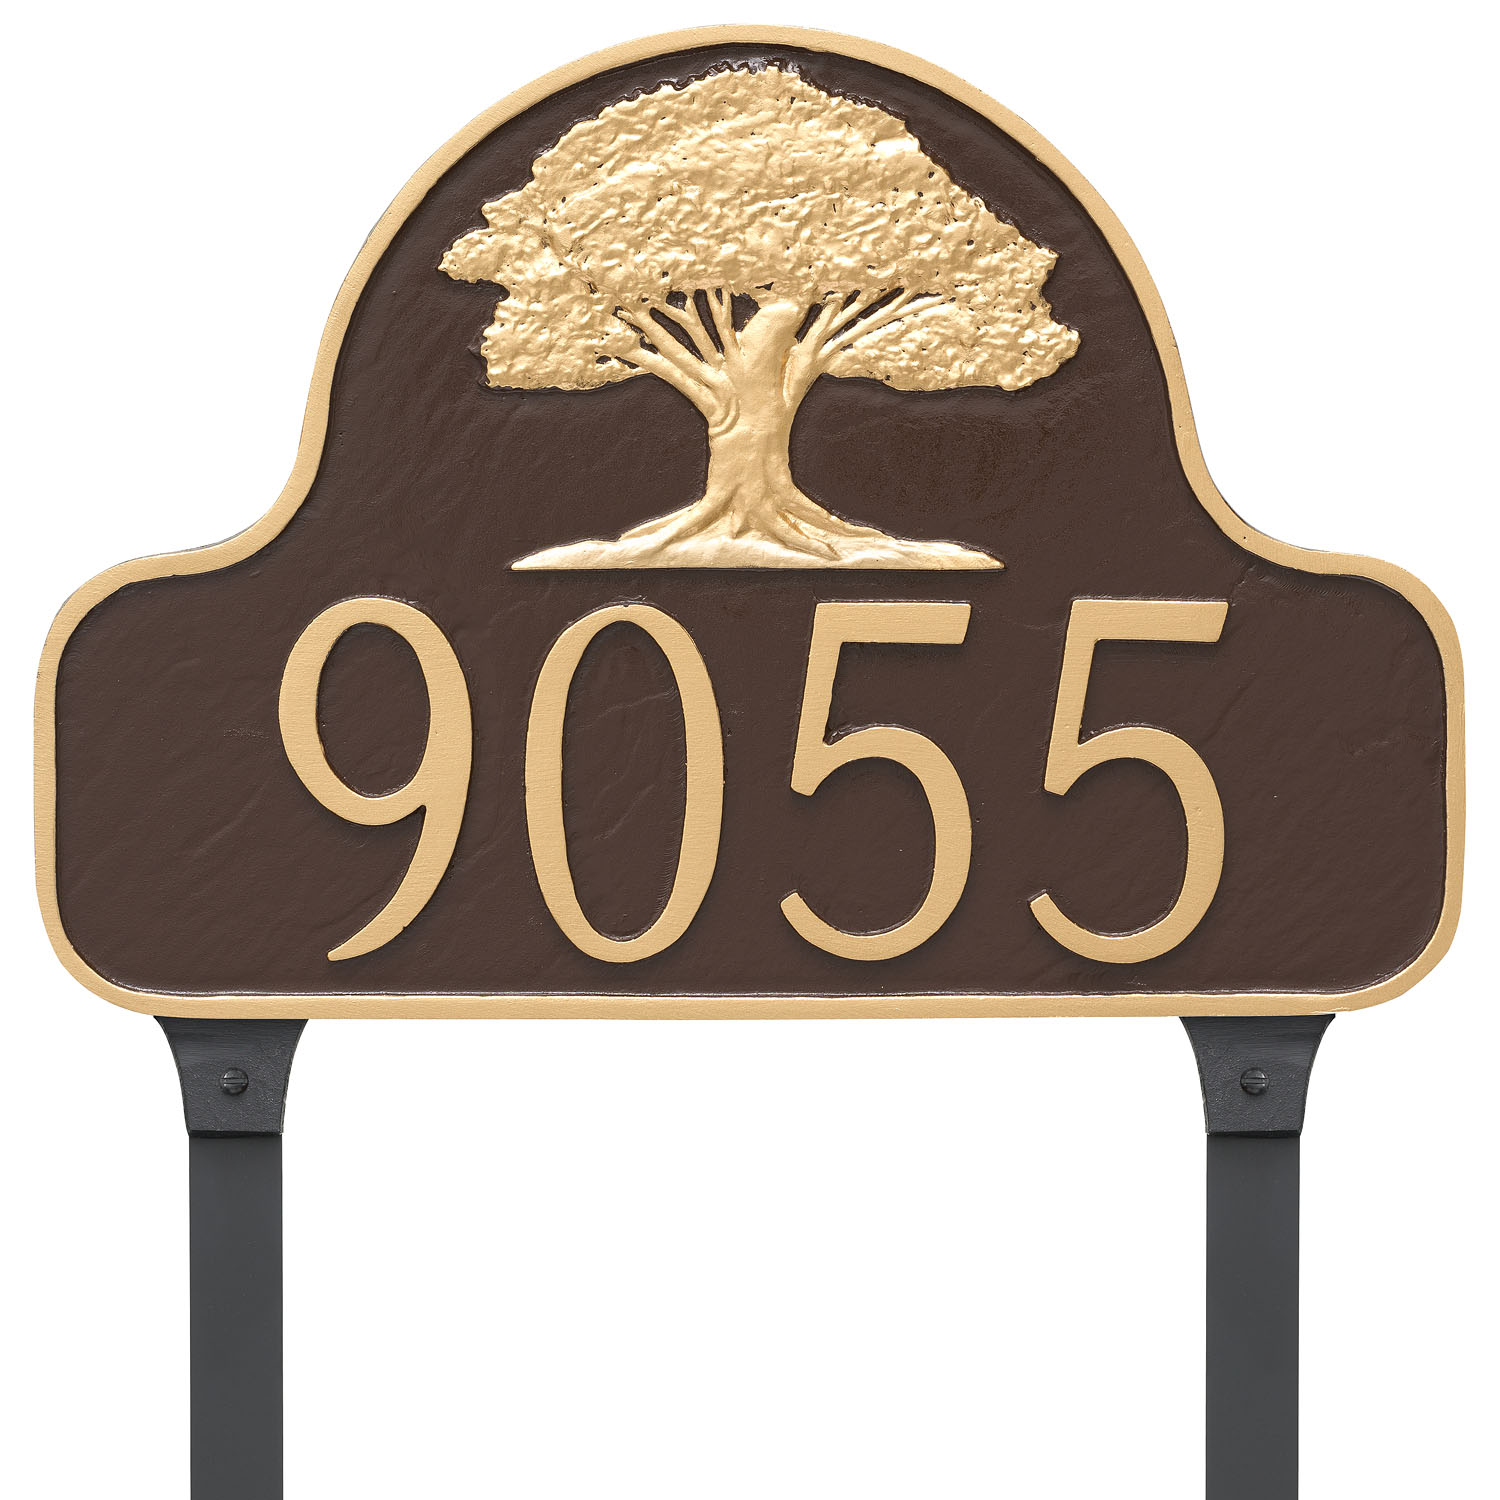 Mighty Oak Tree Address Plaque